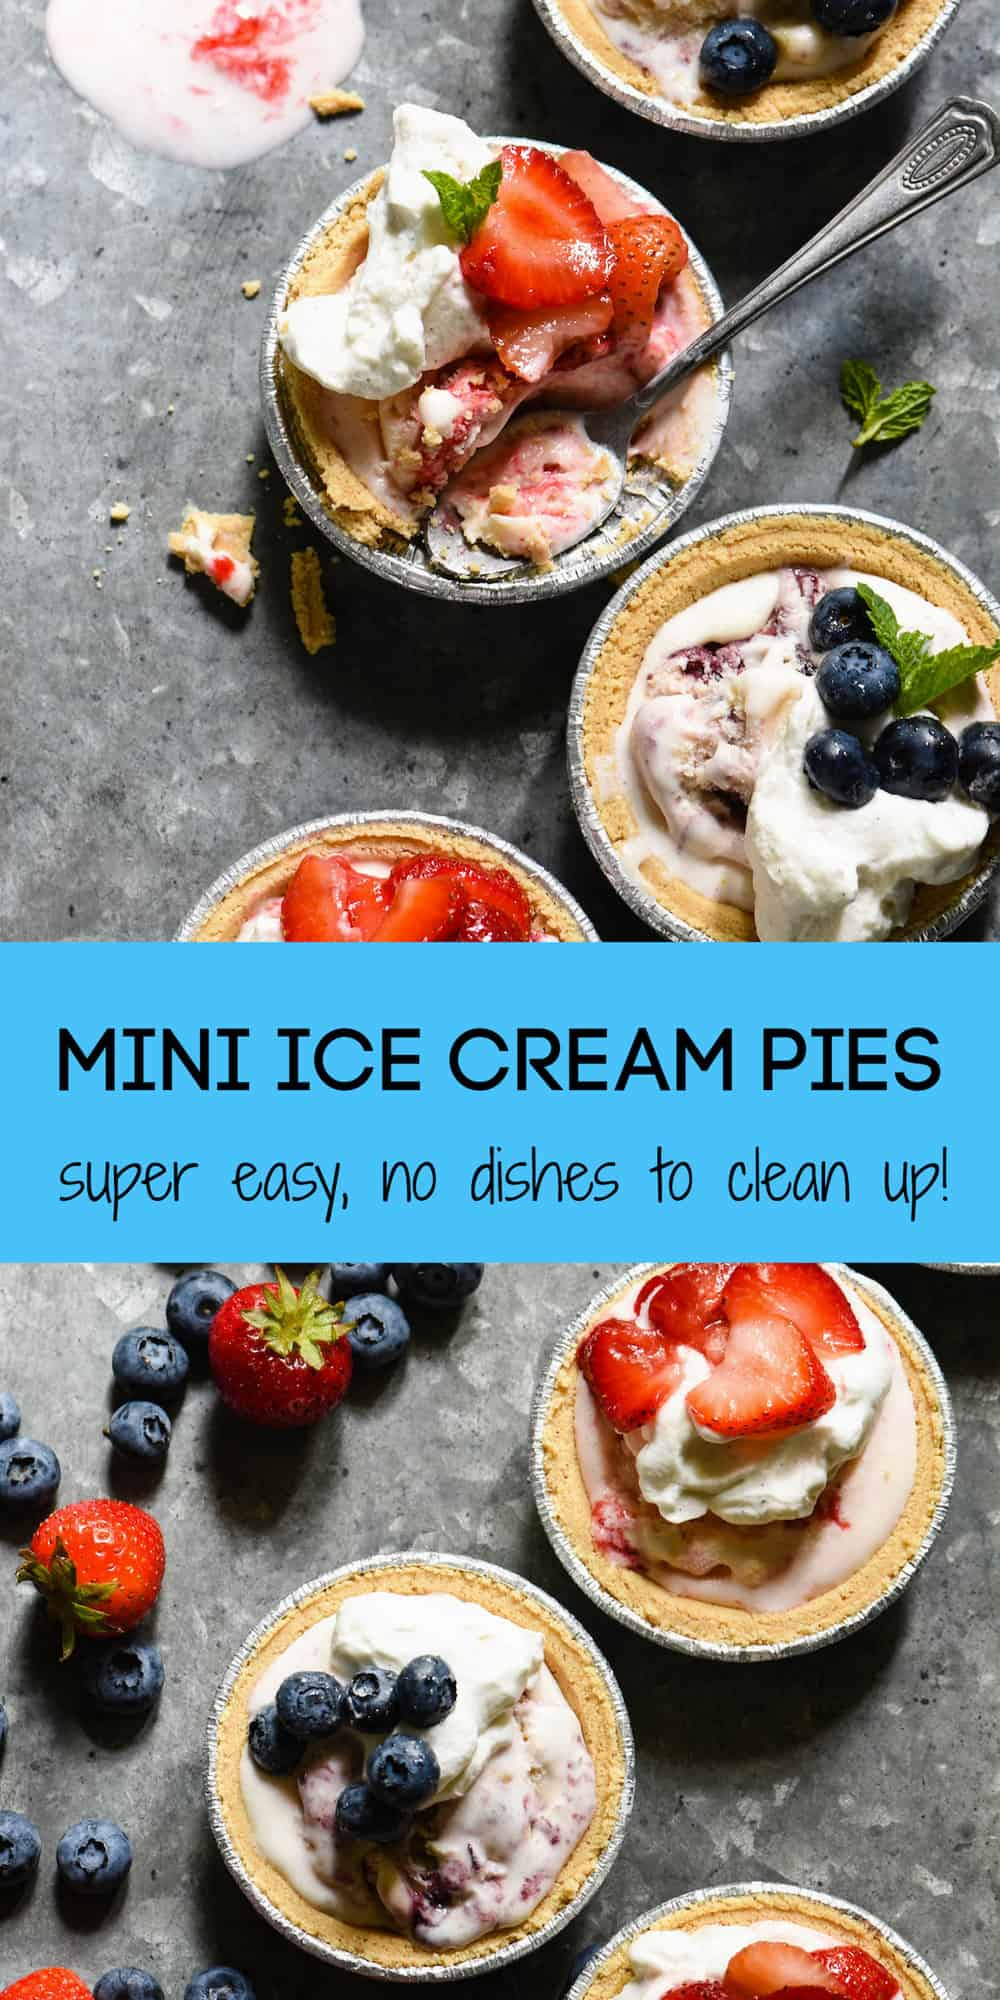 Celebrate summer's sweeter moments with Mini Ice Cream Pies. They take just minutes to put together, and there's no dishes to clean up once they're served! | foxeslovelemons.com